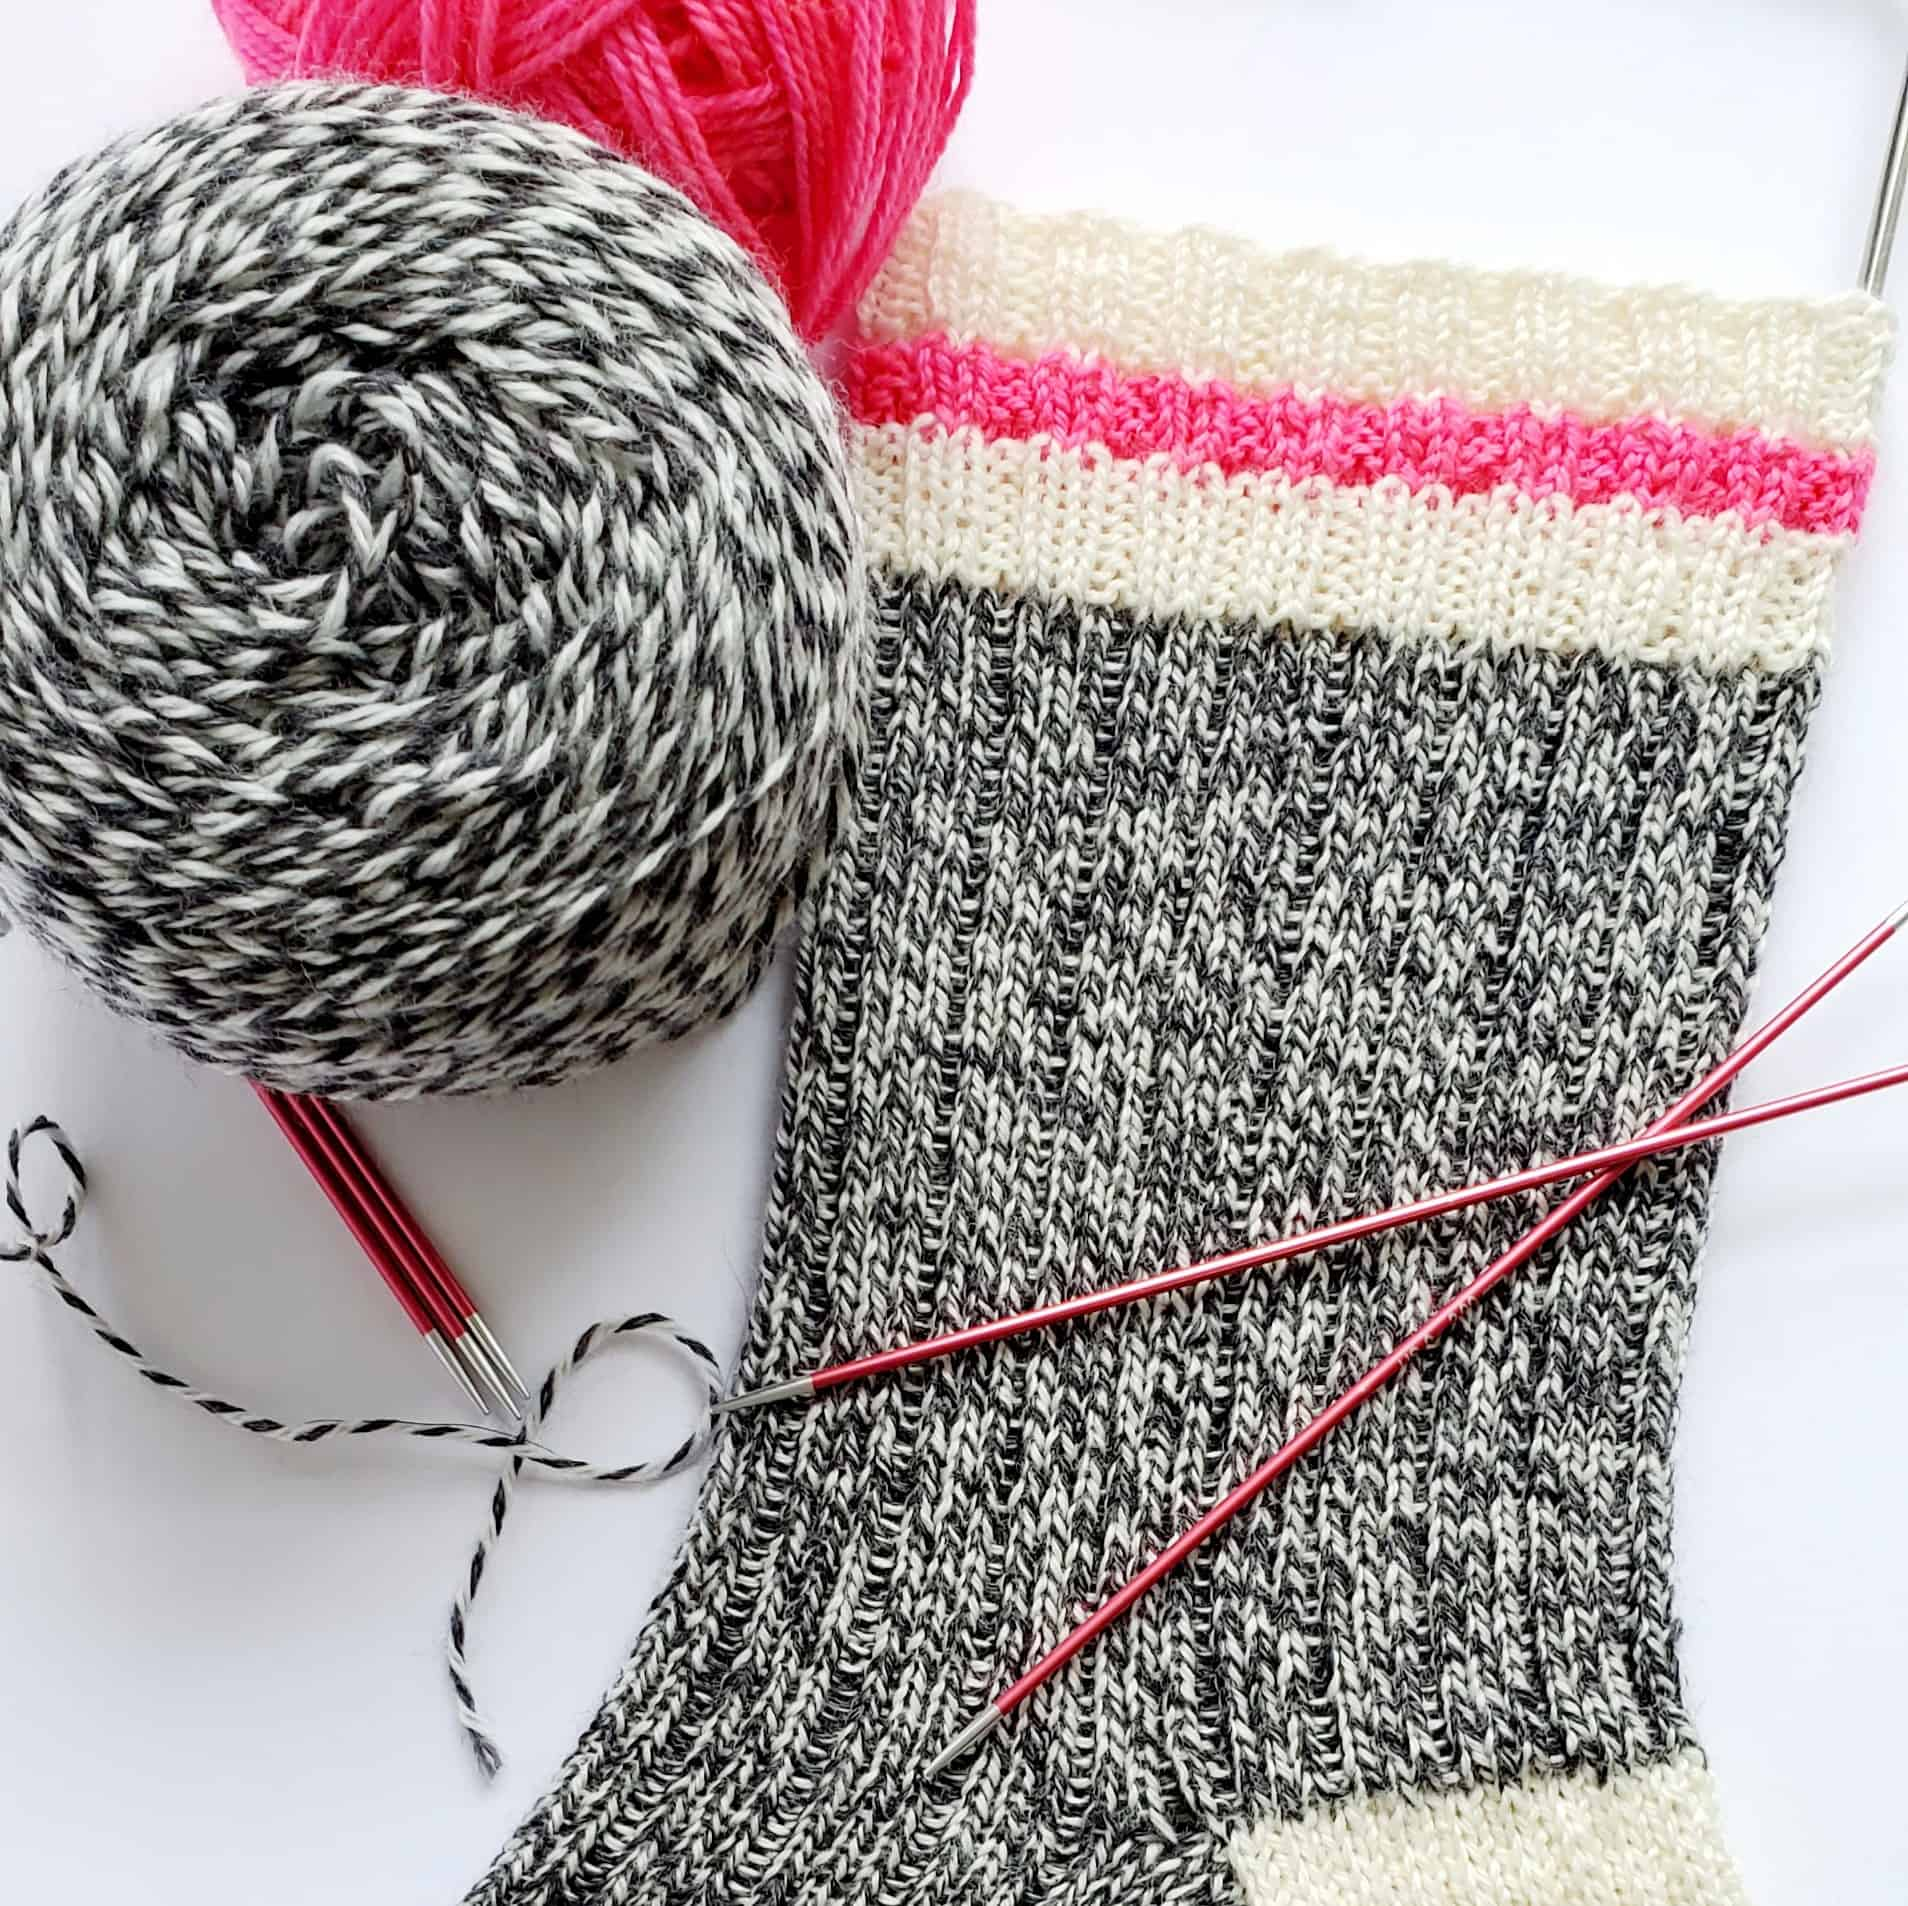 A sock knit with black and white marled yarn with a pink stripe at the top.